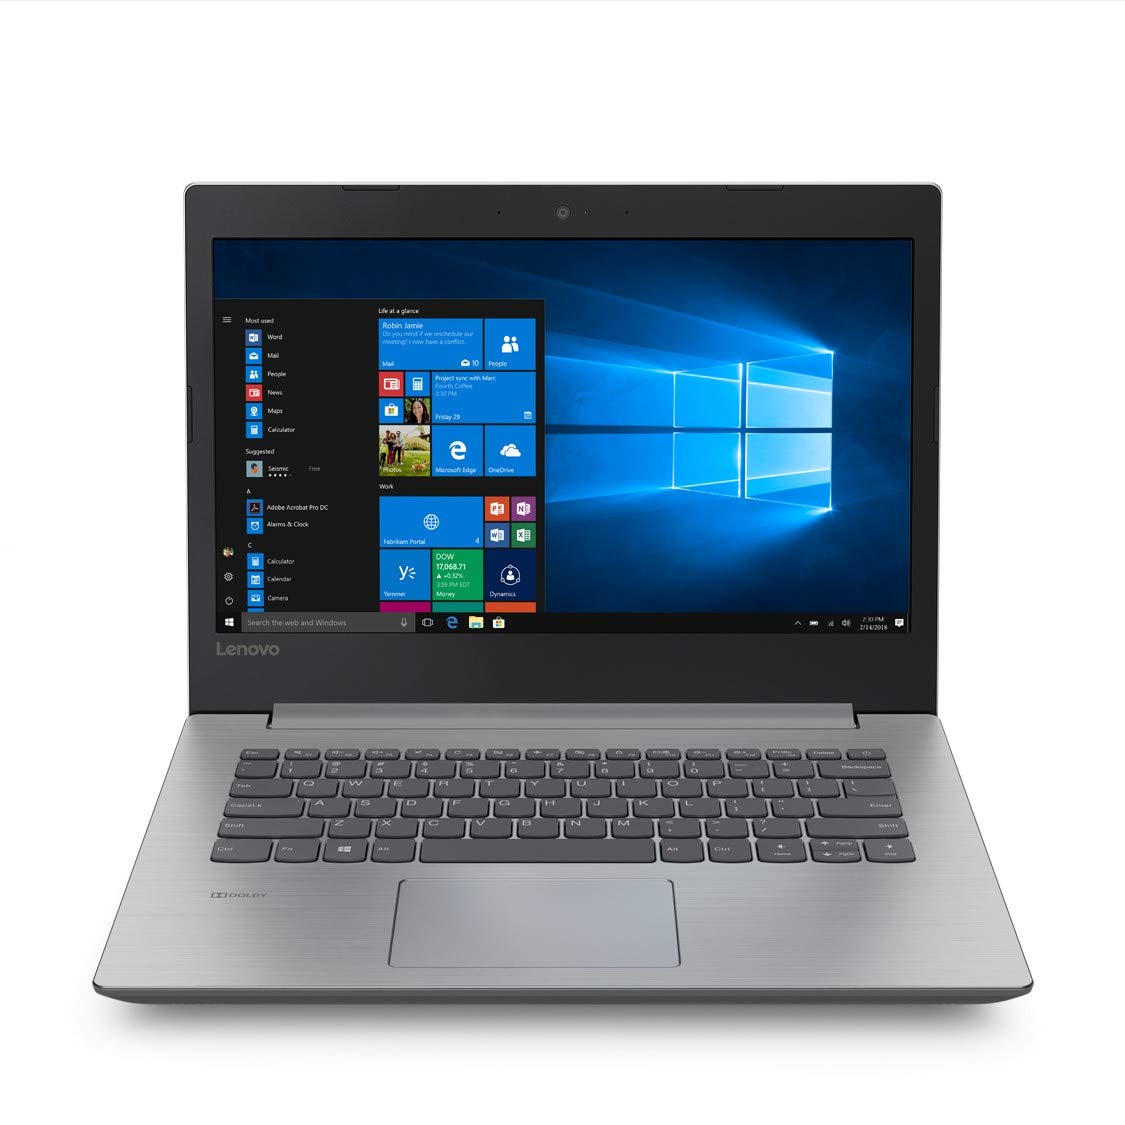 Lenovo Ideapad 330 AMD A6 14-inch Laptop (4GB 500GB HDD Windows 10 Home Platinum Grey), 81D5003HIN